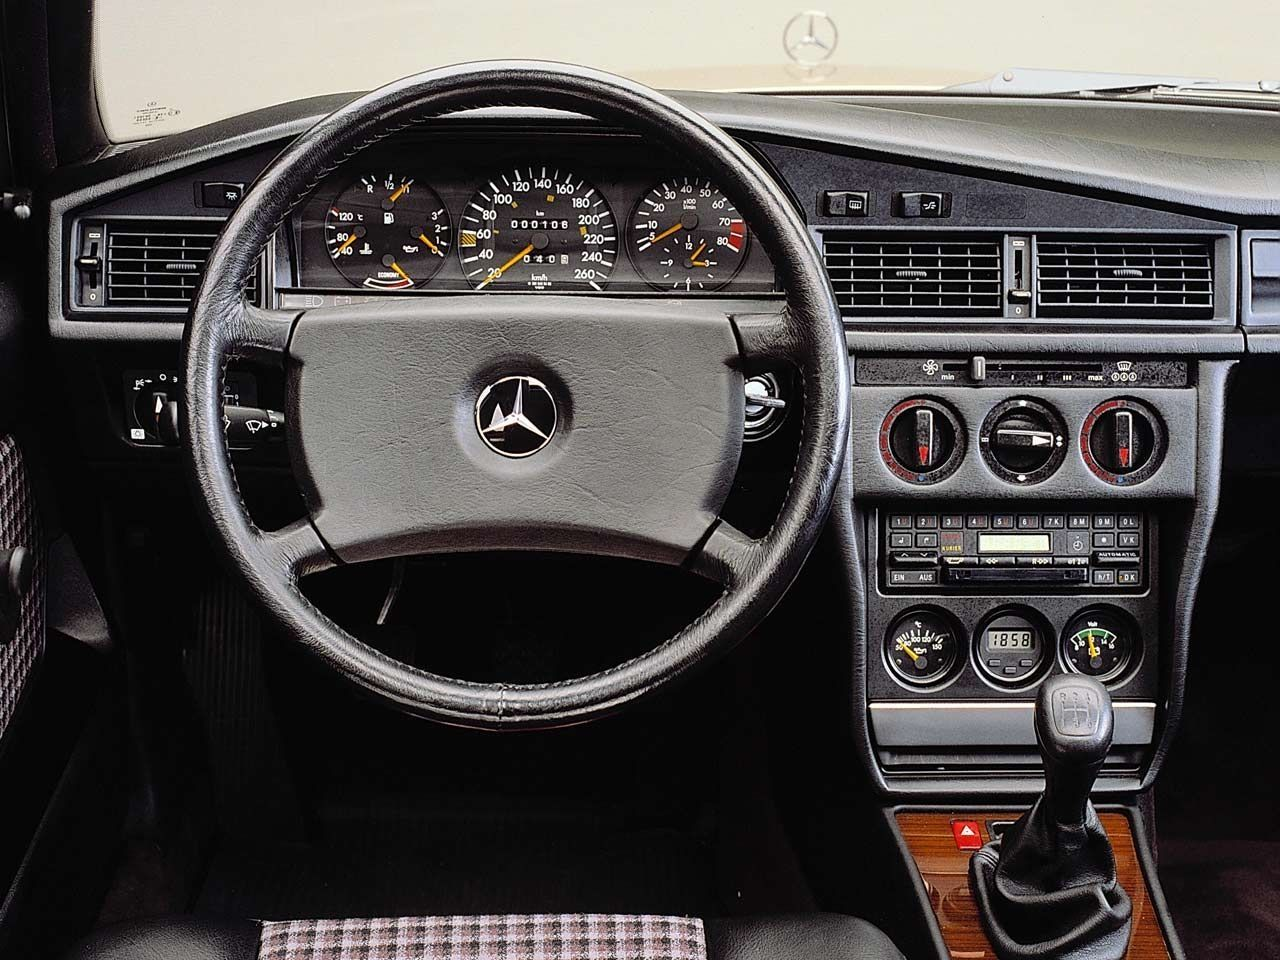 Inside the legendary mercedes benz 190 e 2 3 16 cosworth for Inside mercedes benz